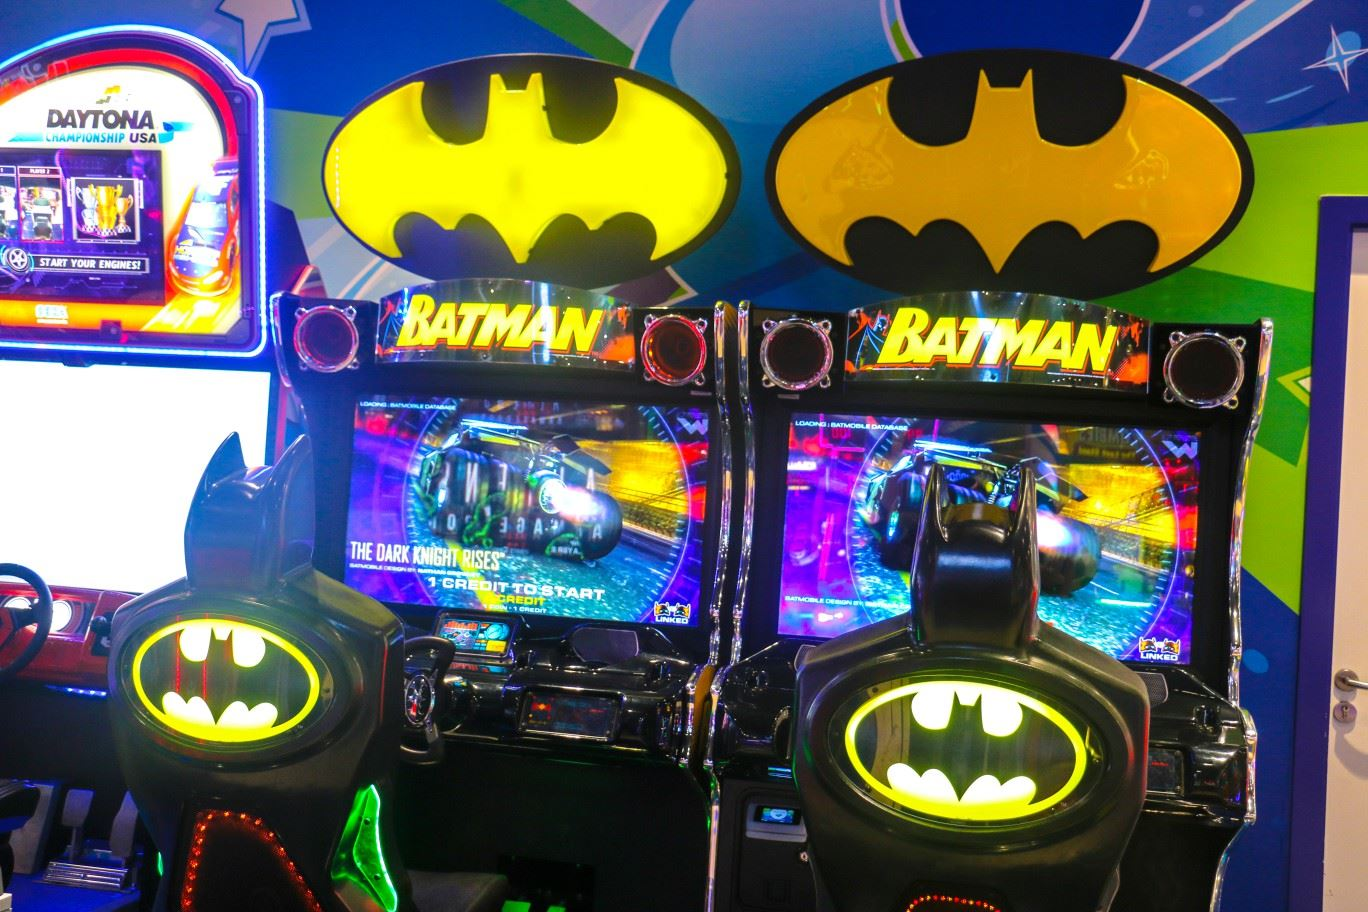 Batman game at Magic Planet Matajer Al Juraina